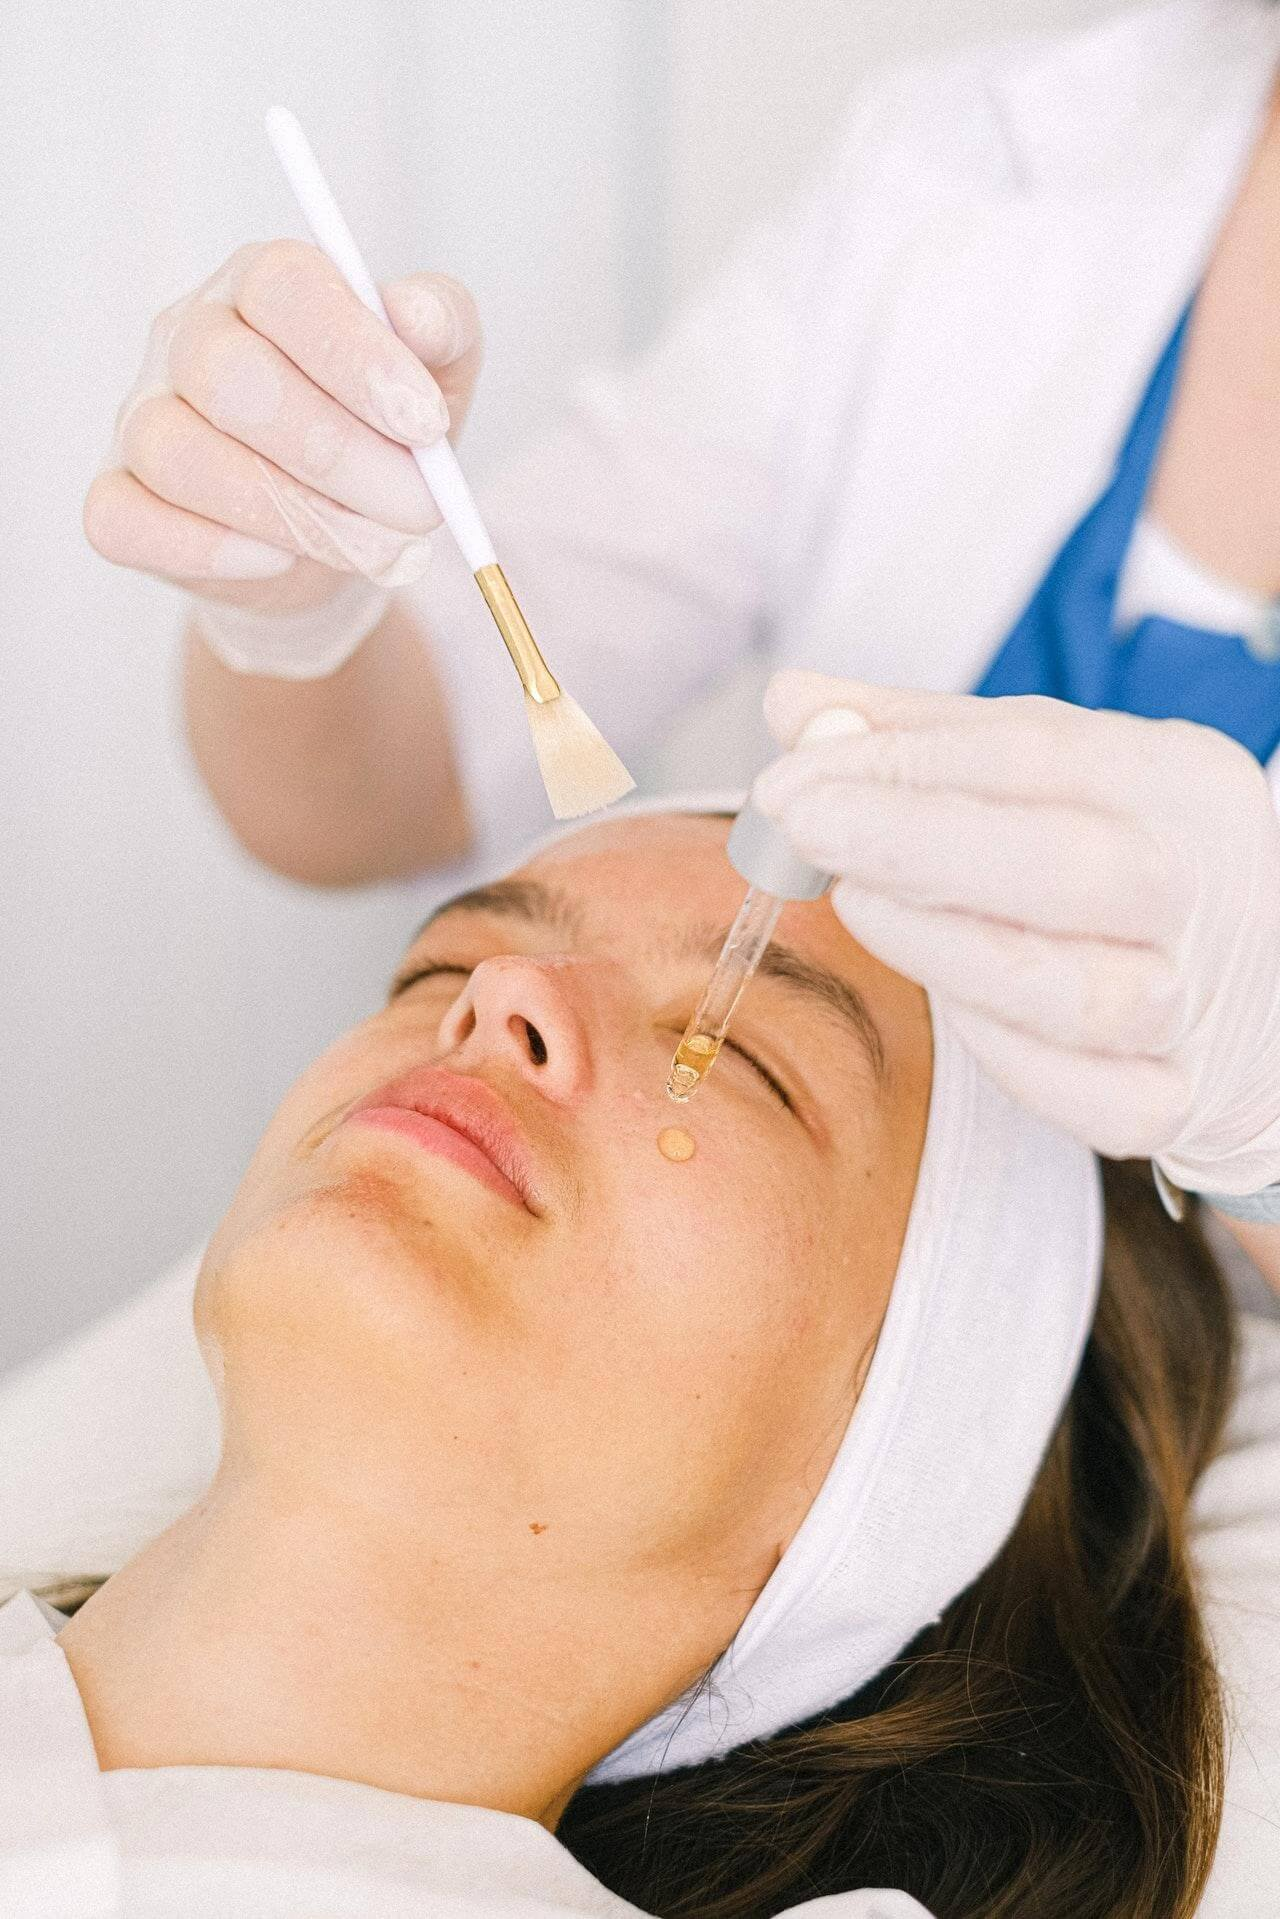 Chemical peels are only effective if done by a certified cosmetic practitioner.